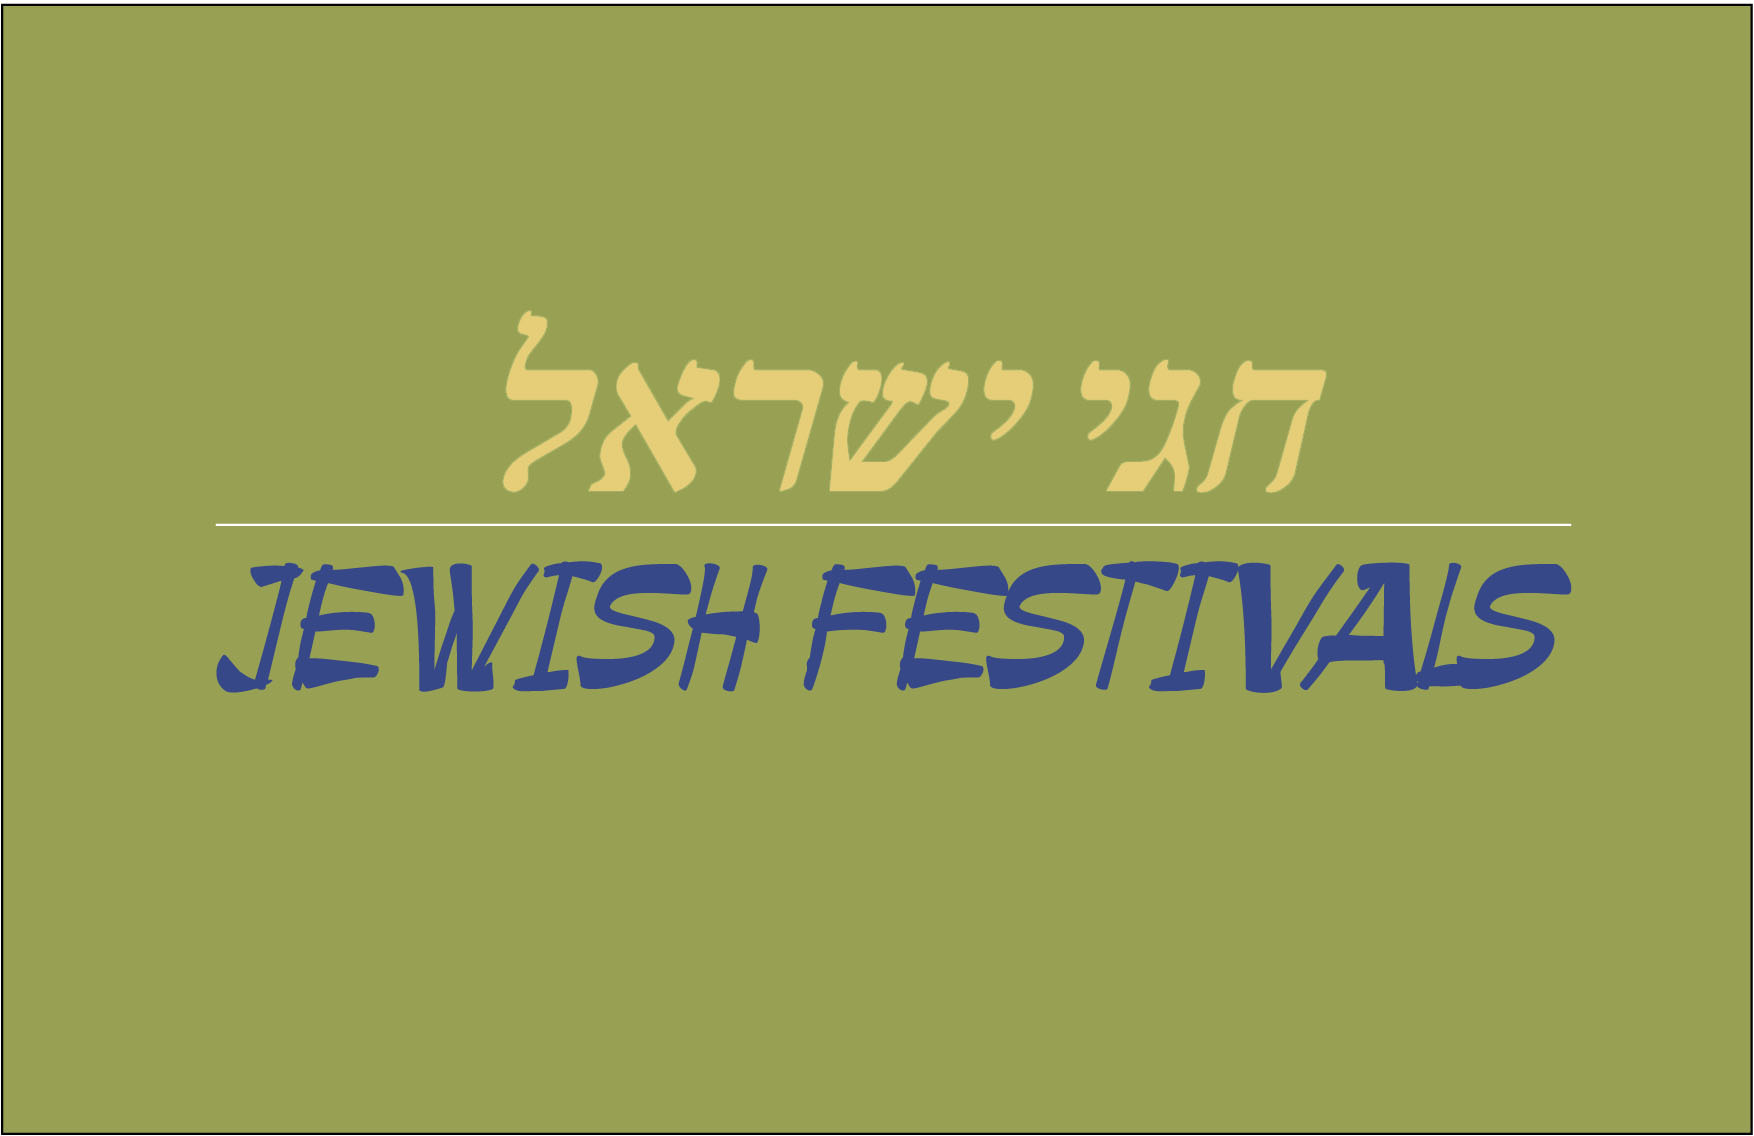 0 SlideSh_FESTIVALS OF ISRAEL_1.jpg